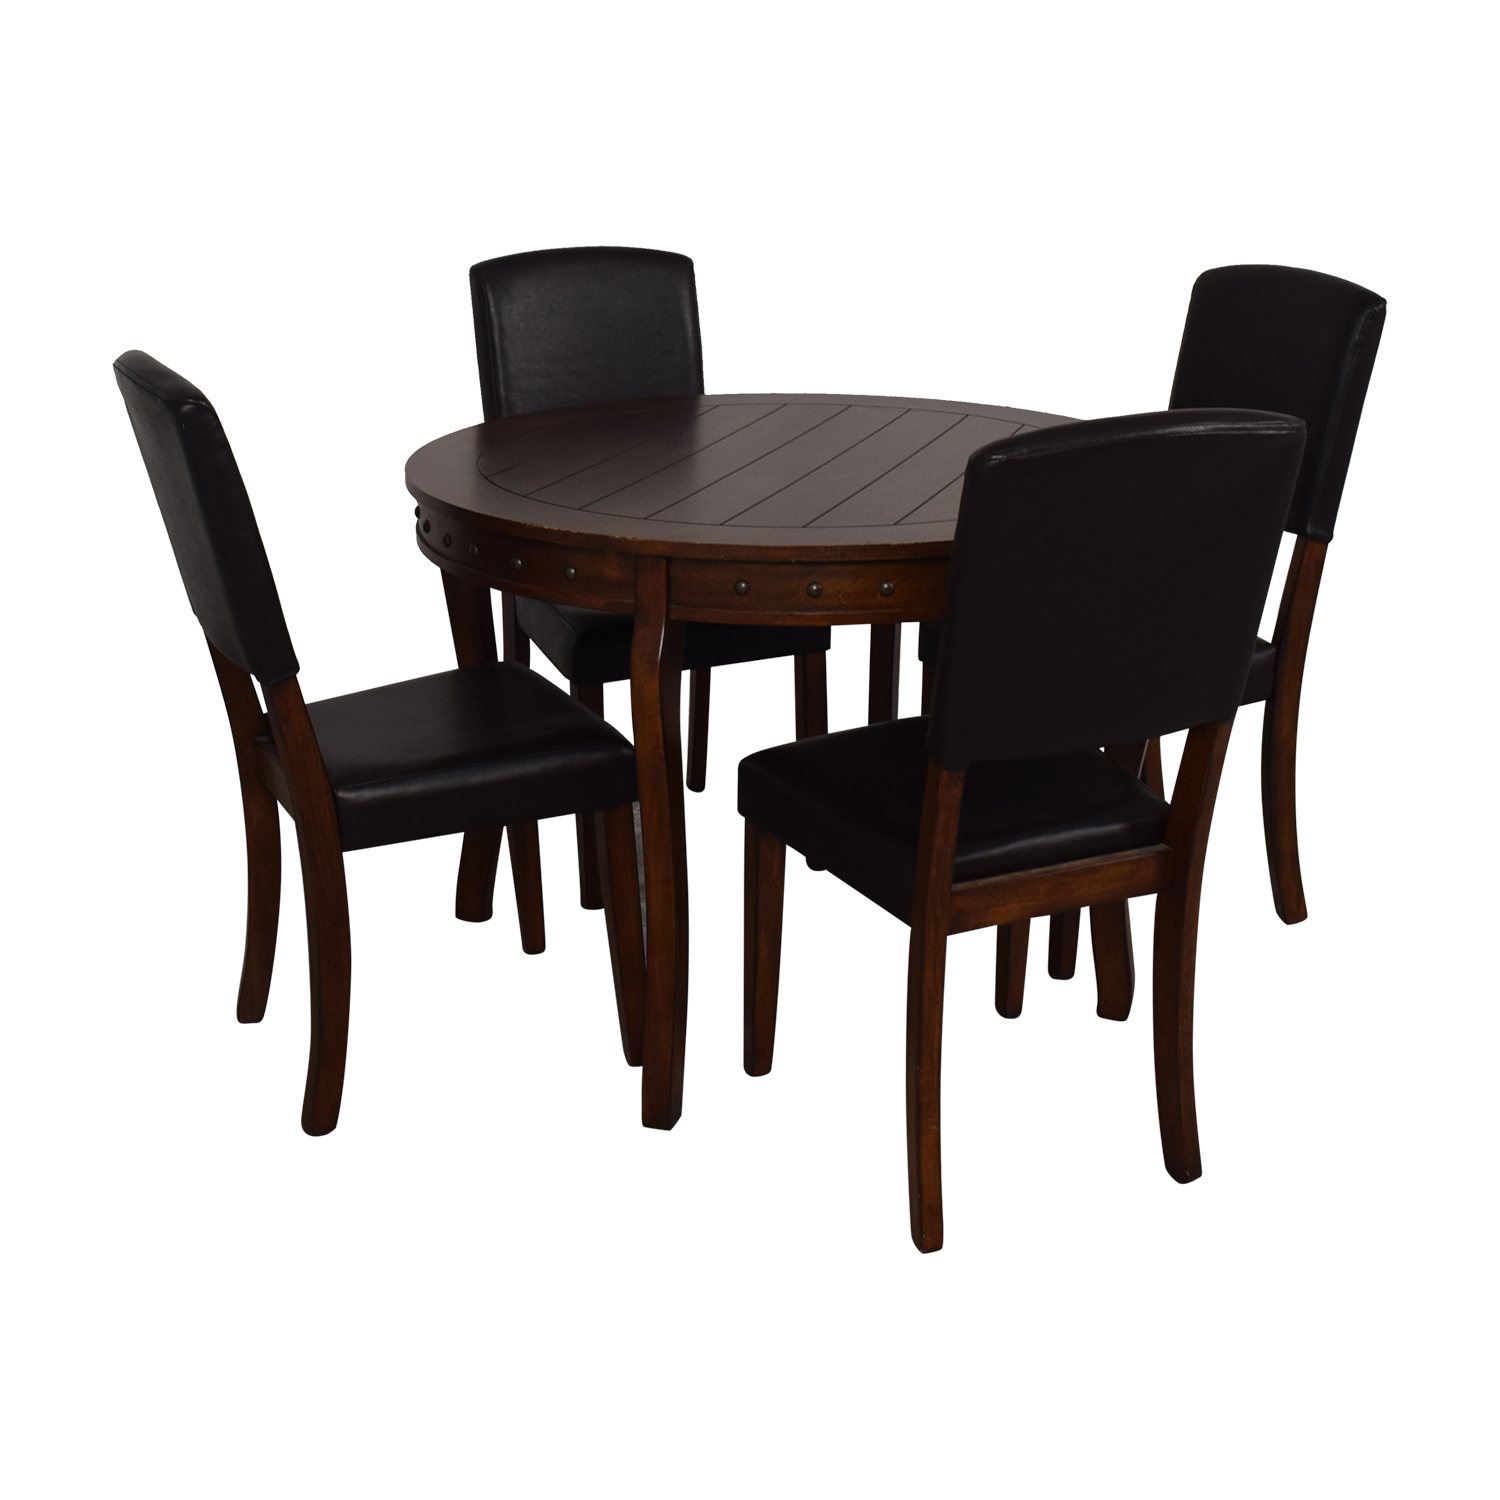 Ashley Furniture Ashley Furniture Round Dining Table with Chairs used